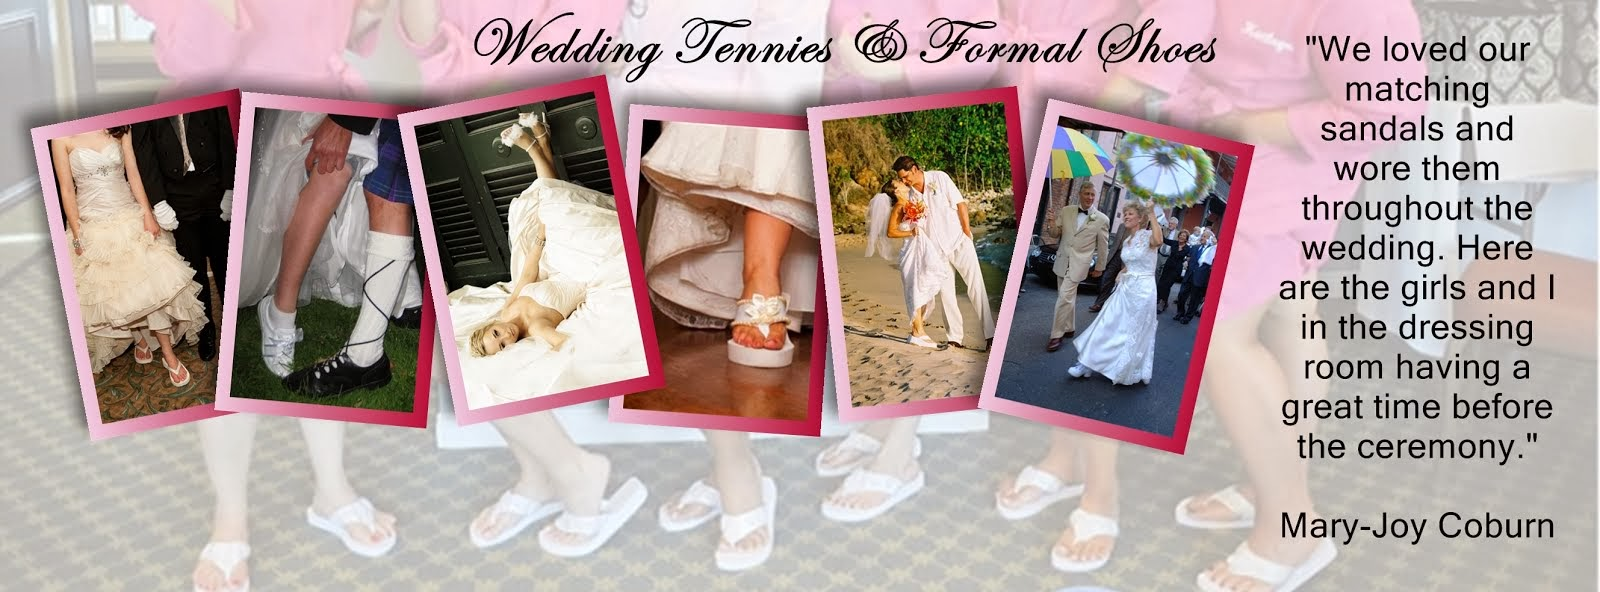 www.weddingtennies.com